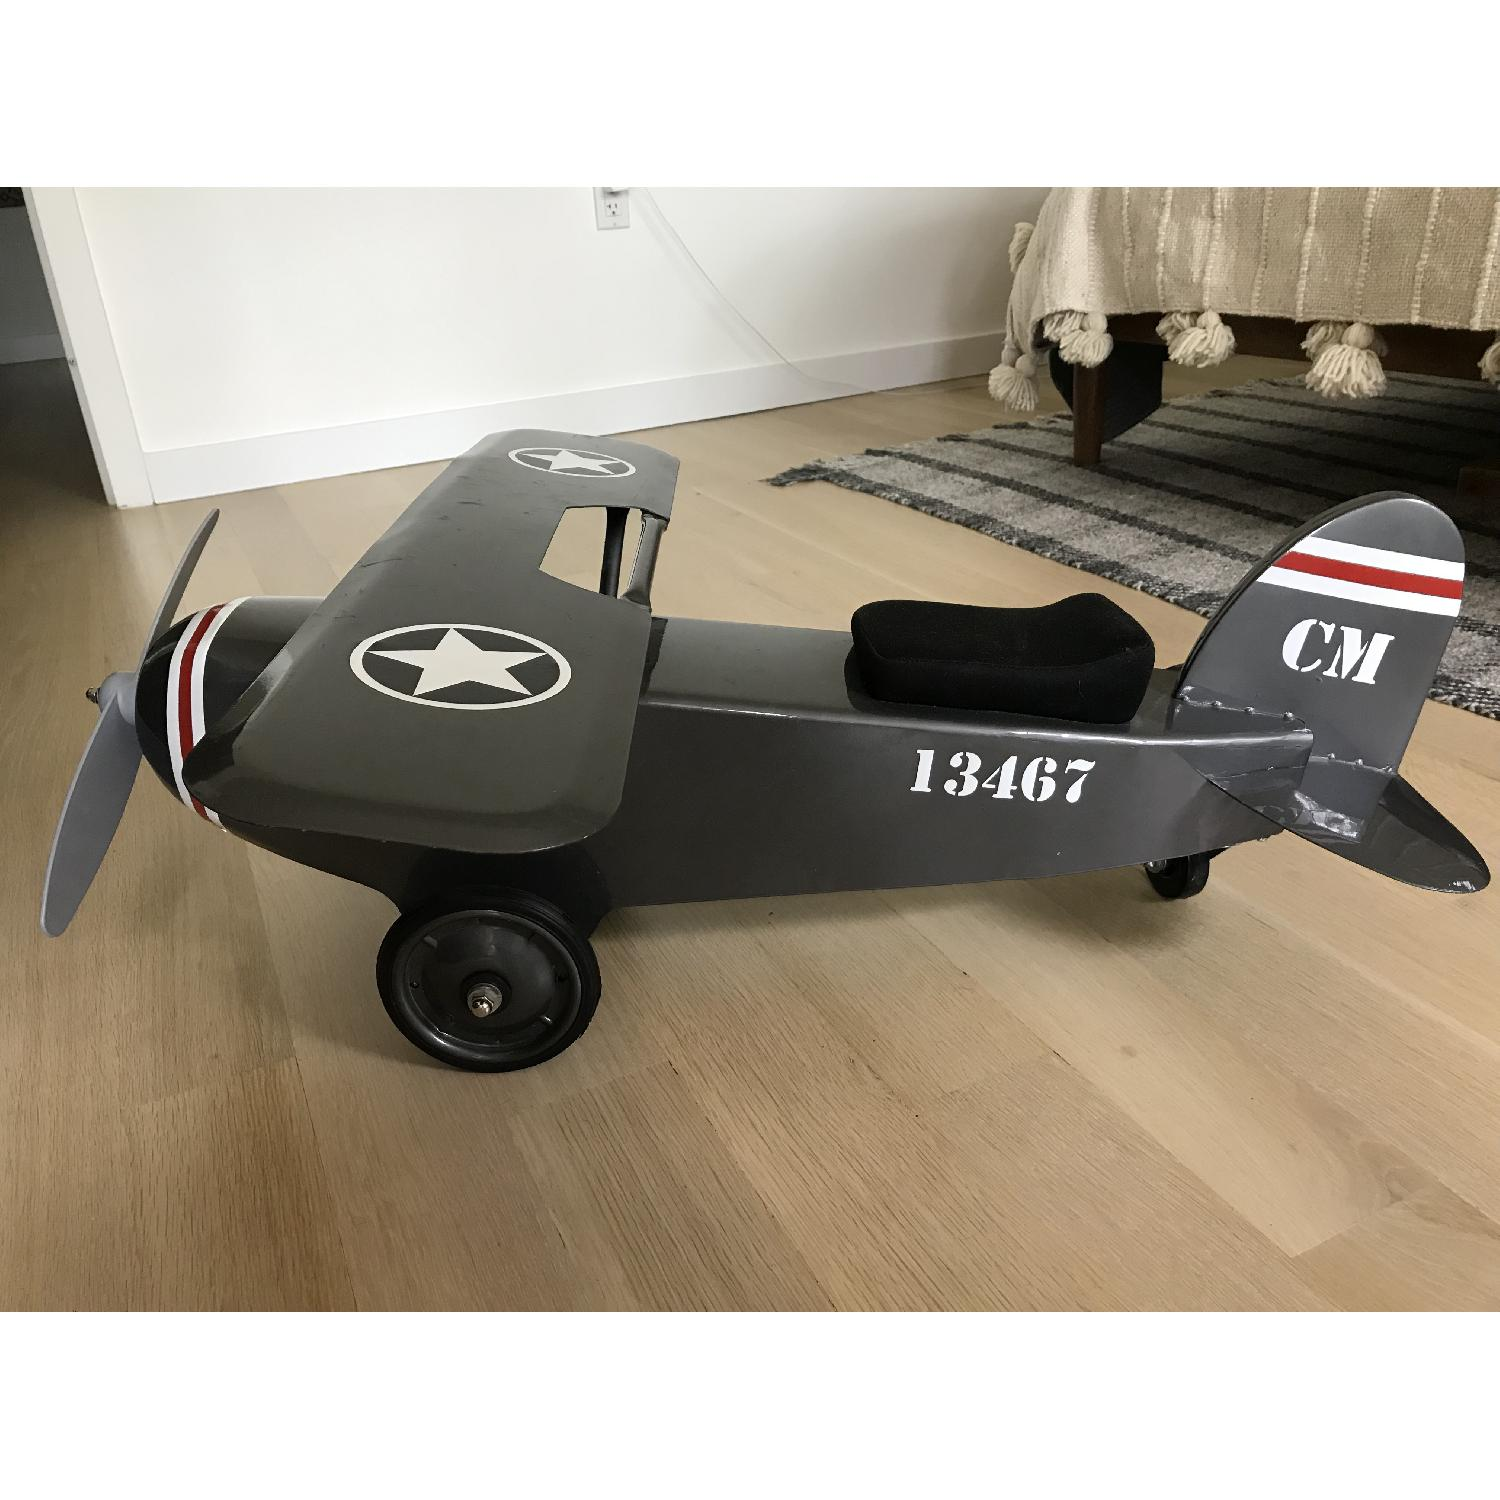 Restoration Hardware Baby and Child Vintage Army Plane Scoot-4